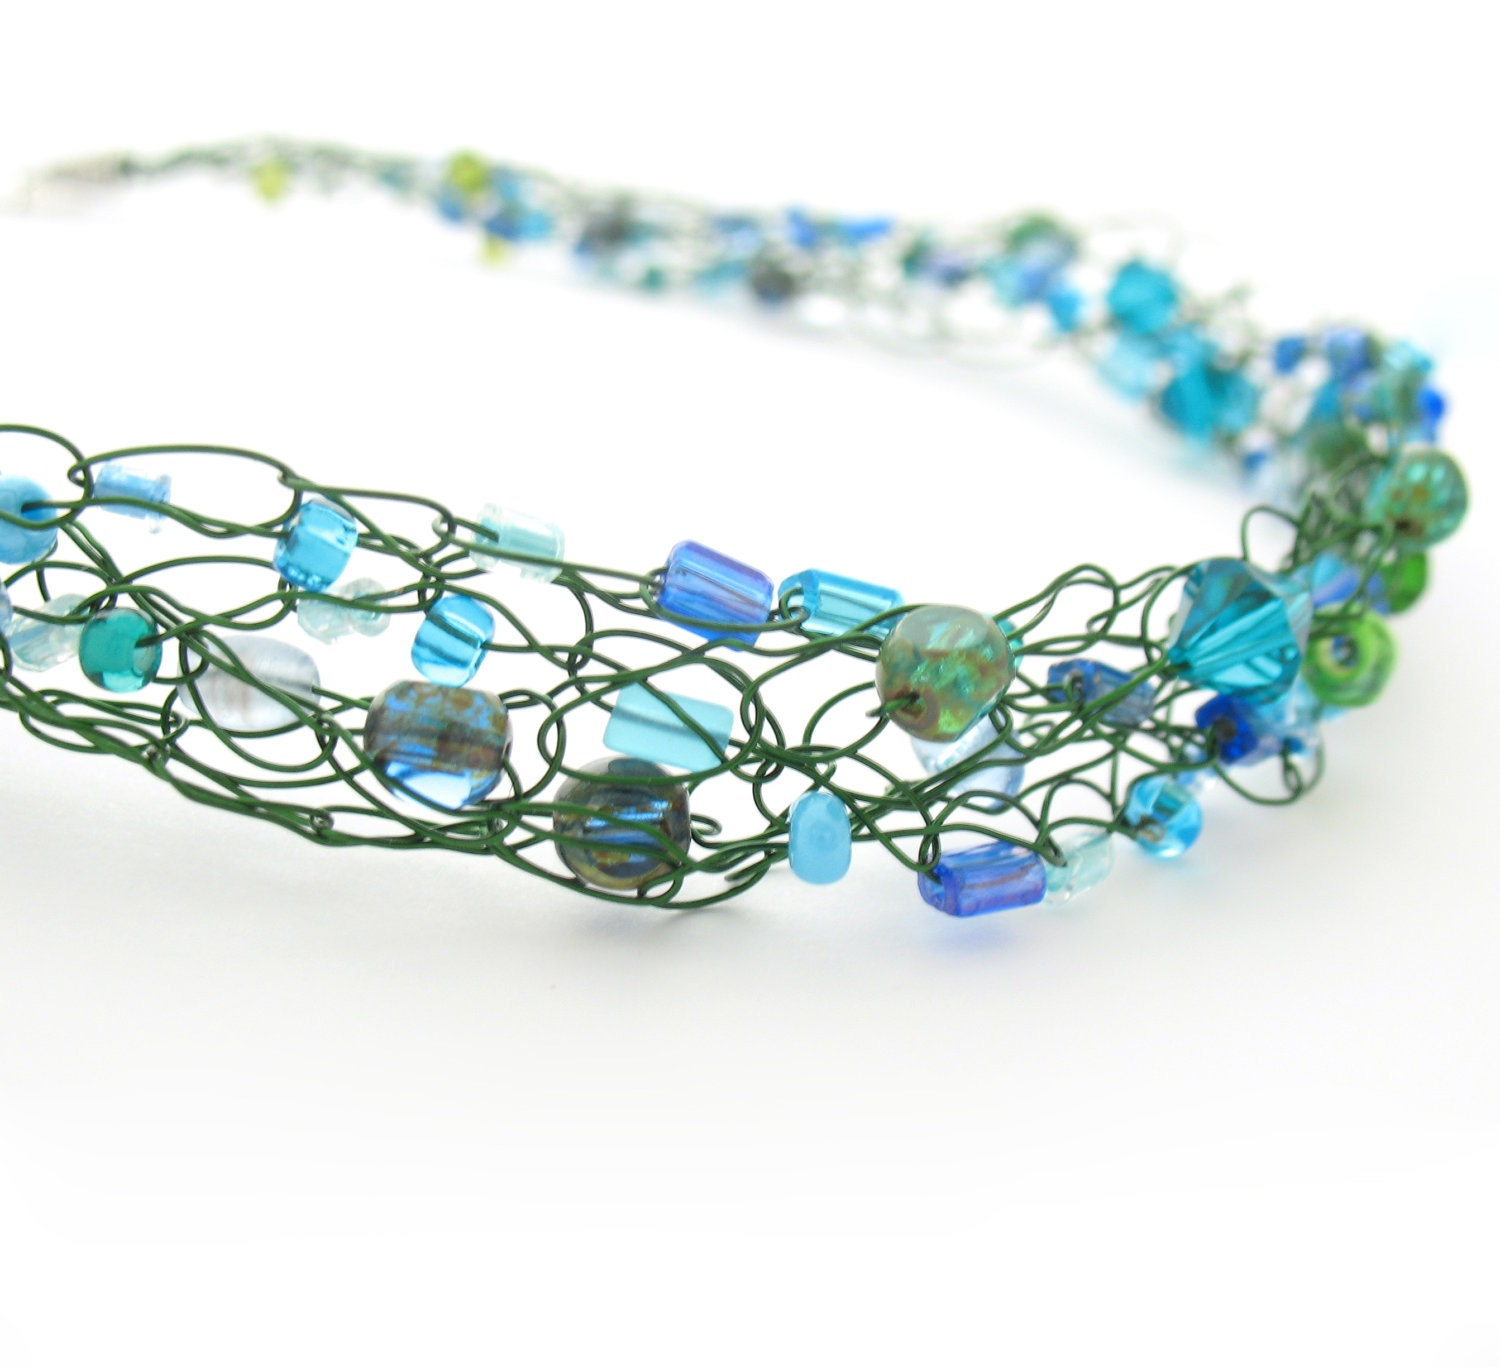 wire crochet beaded necklace green blue by moonlightshimmer